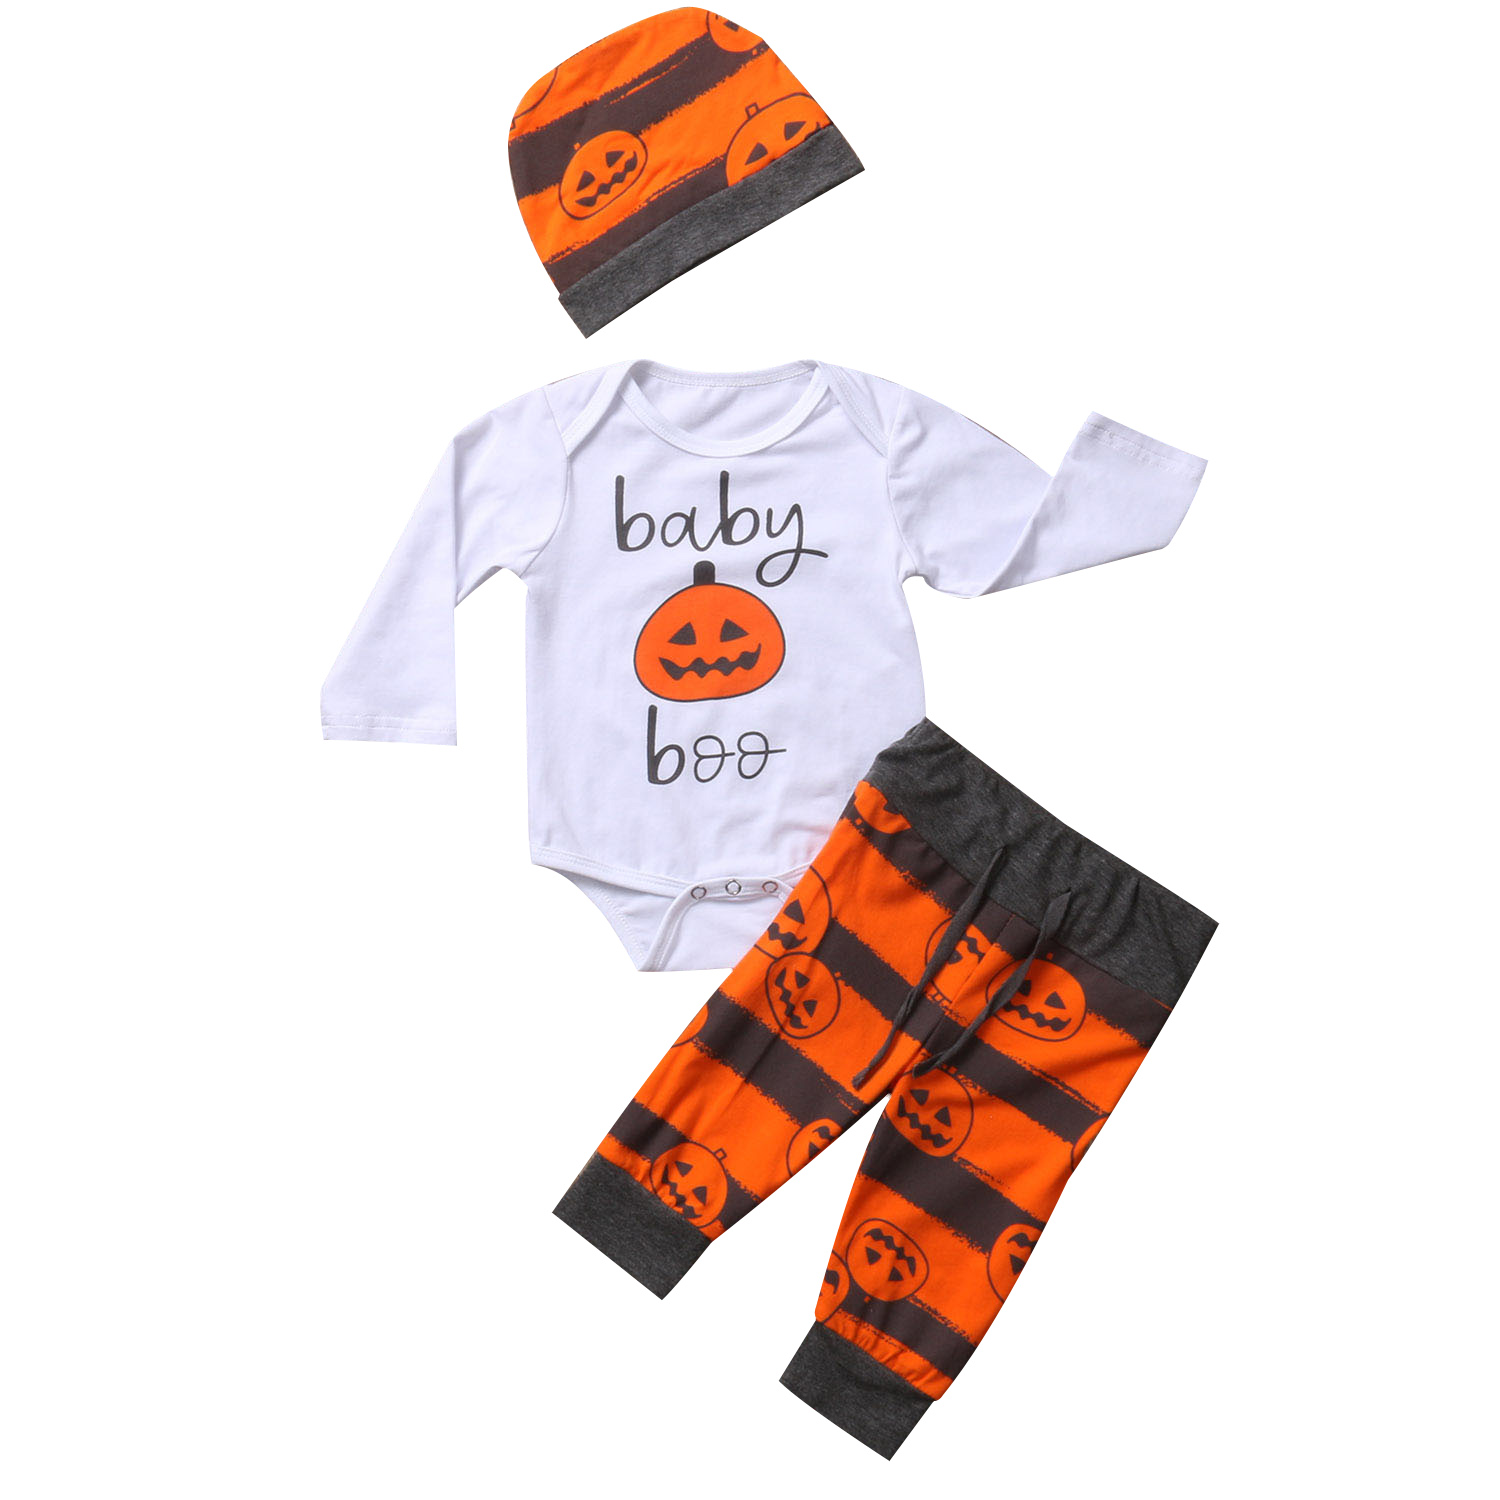 3PCS High Quality Halloween Set Newborn Baby Girl Boy Clothes Long Sleeve Tops Romper +Long Pants Hat Outfits Baby Clothing 2017 autumn halloween pumpkin baby clothes newborn infant boy girl long sleeve romper tops leggings pants hat outfit 2pcs